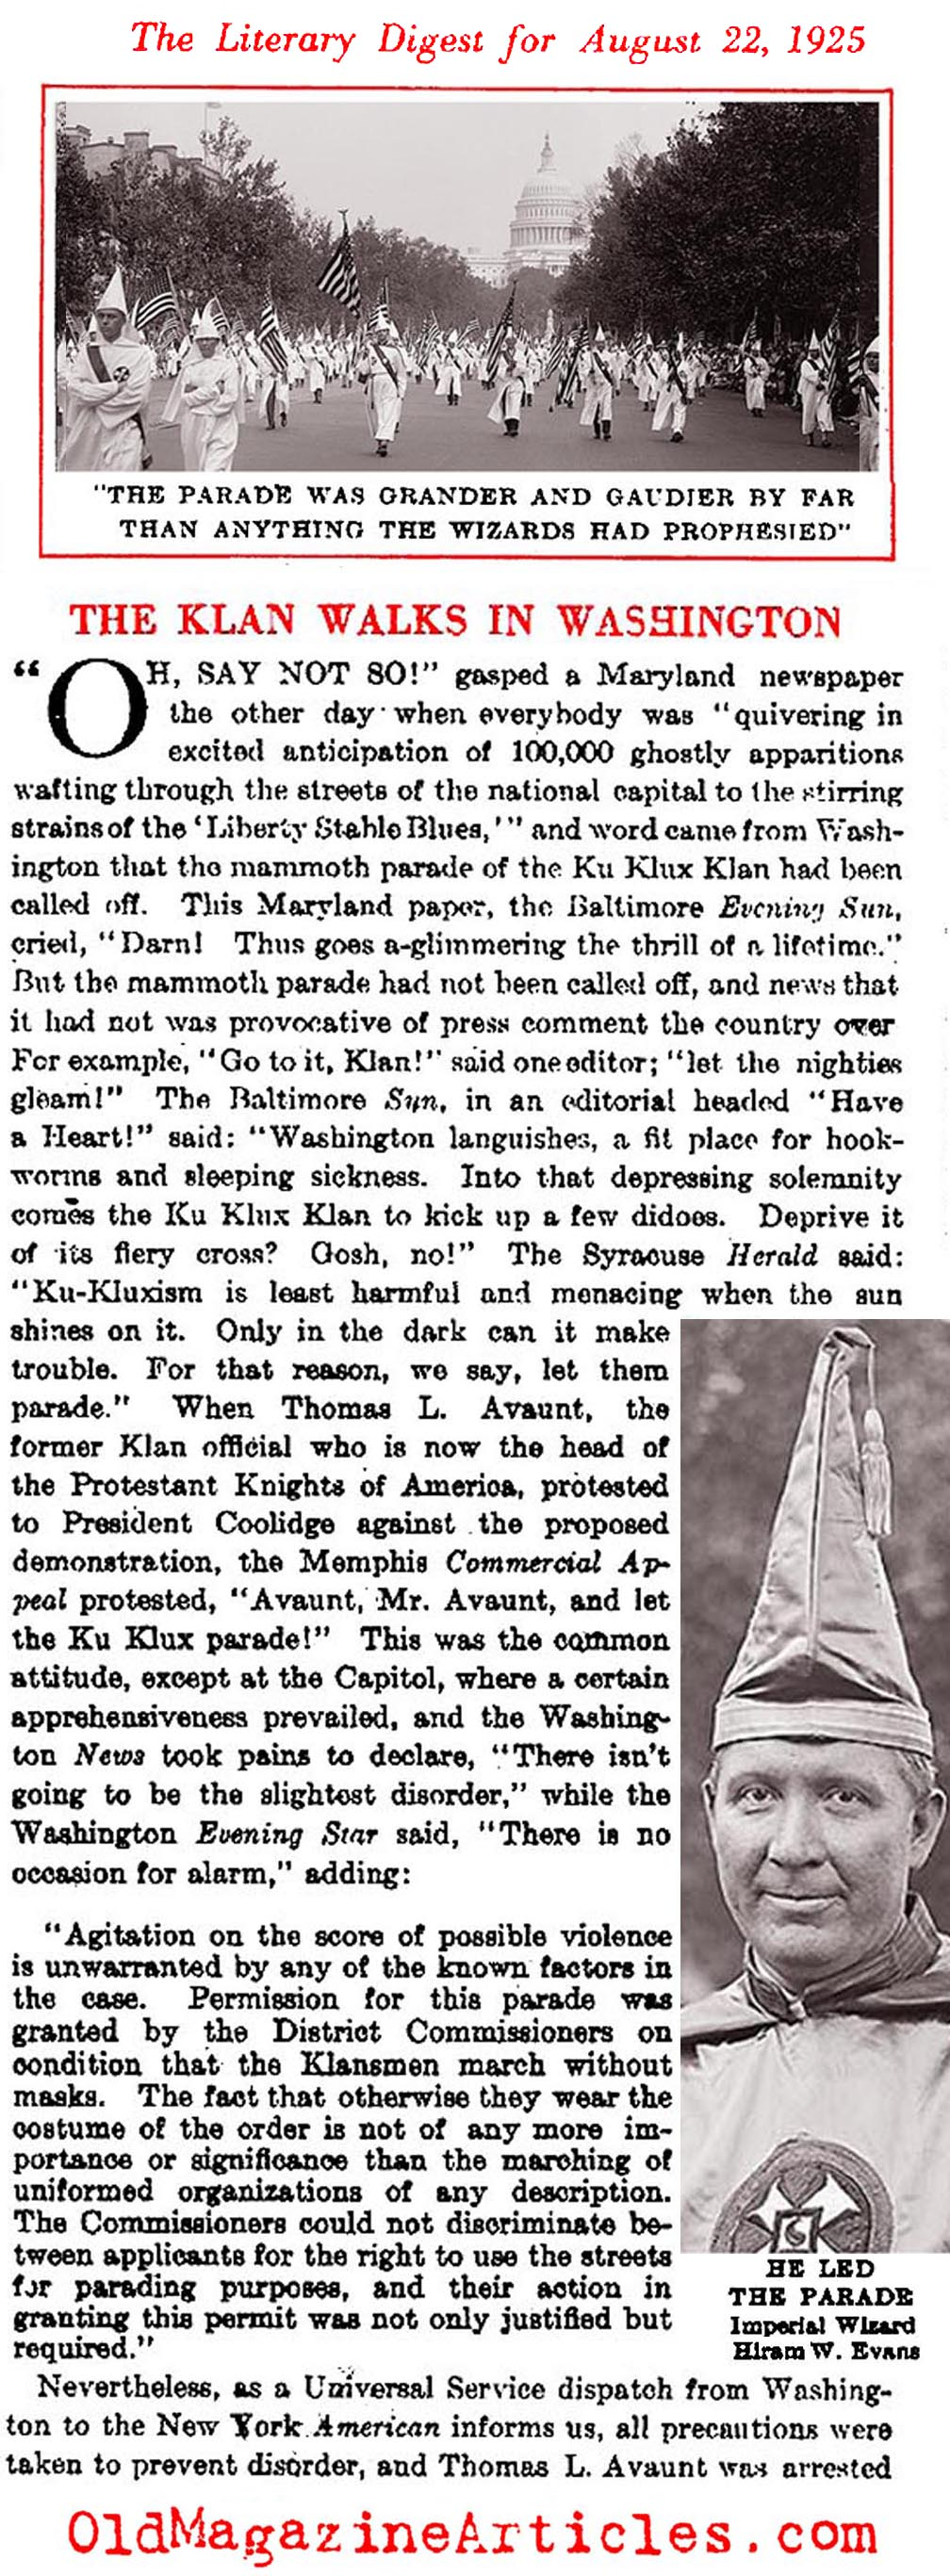 50,000 Klansmen March in Washington, D.C. (Literary Digest, 1925)